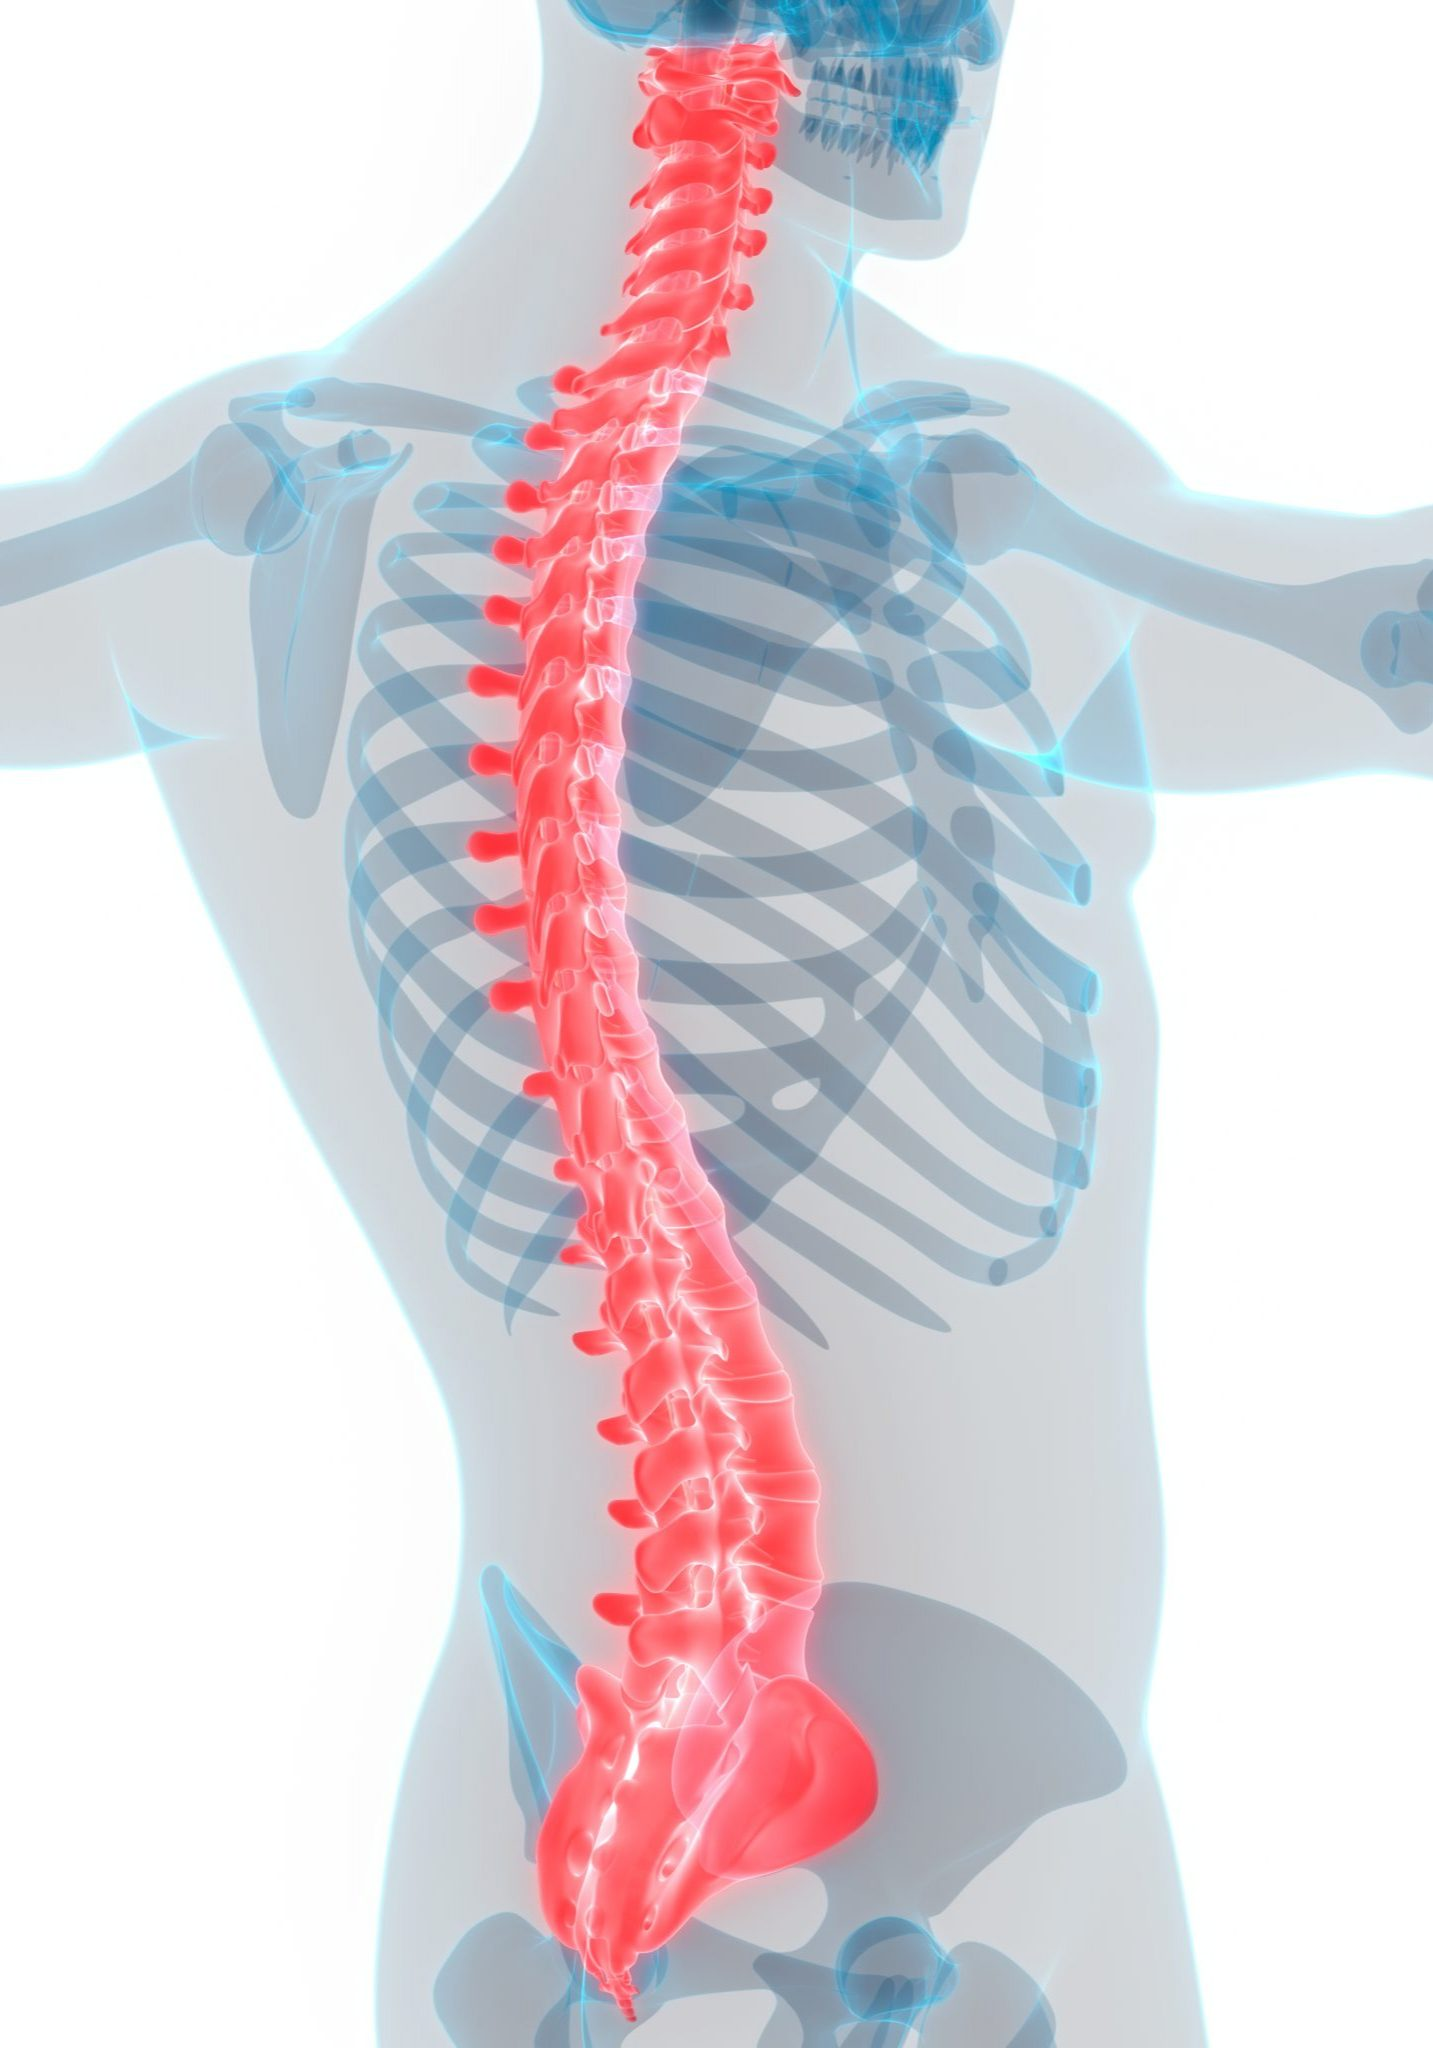 Chiropractic Spine Graphic